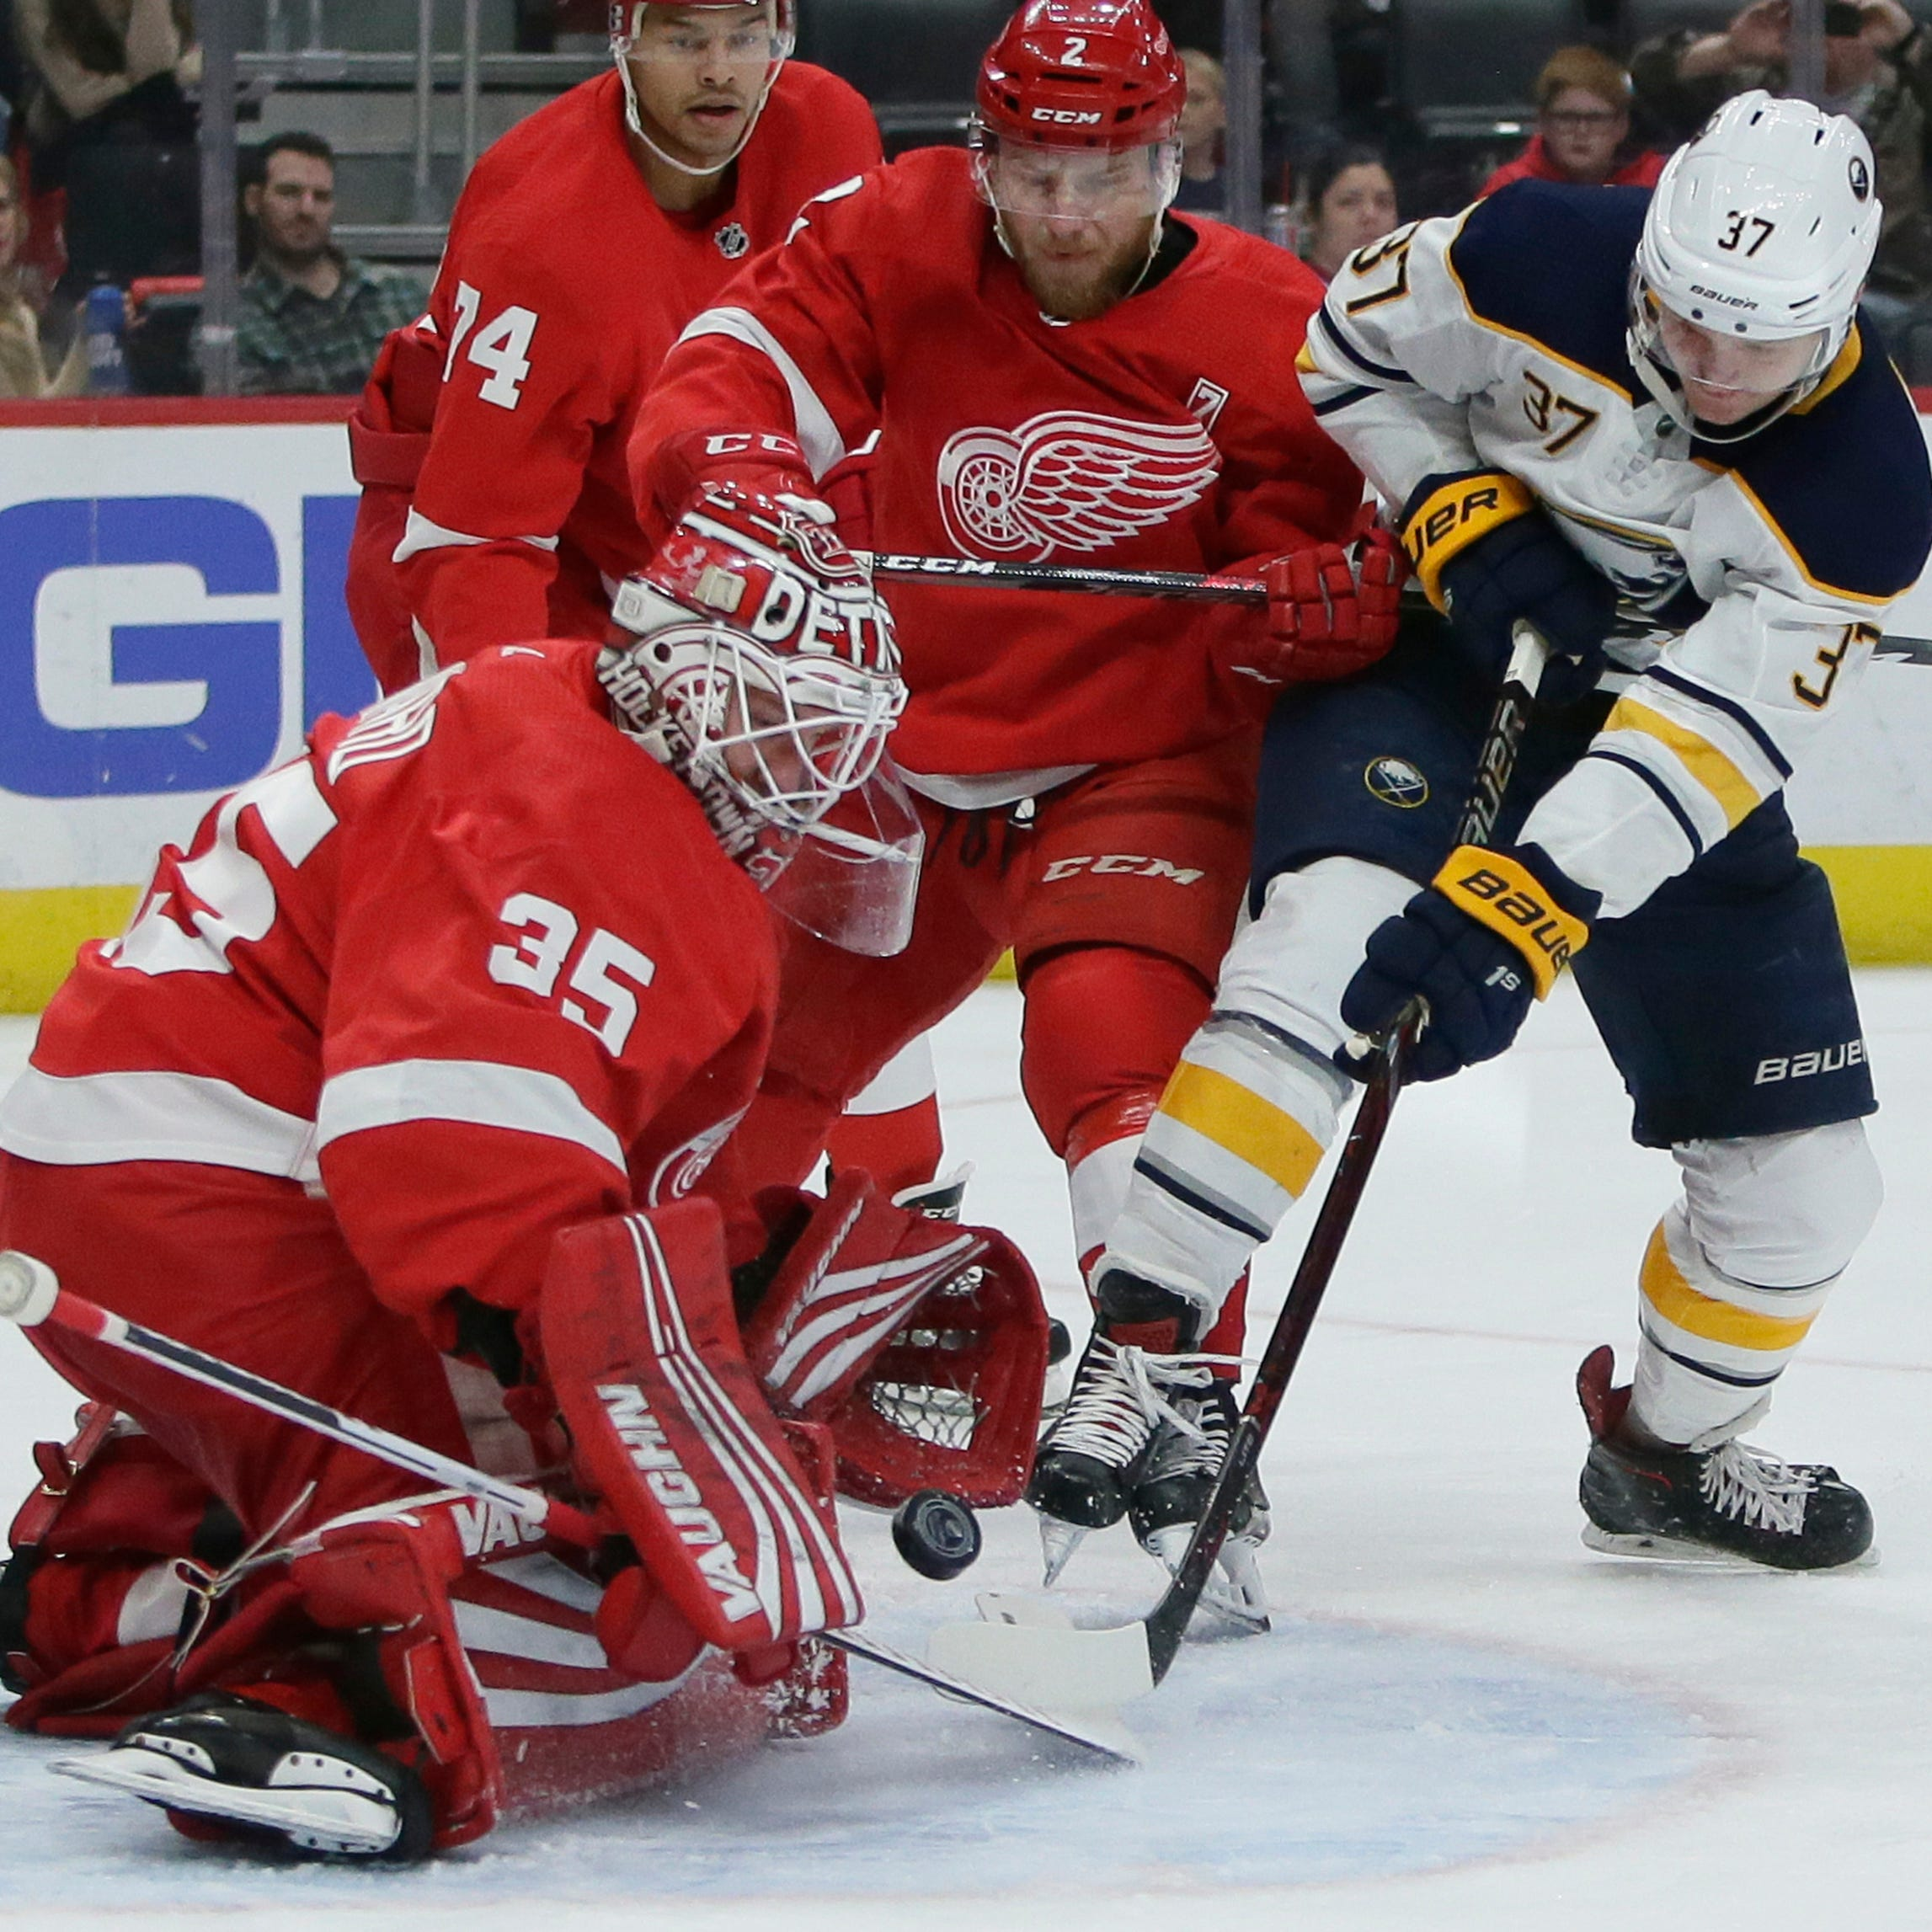 Detroit Red Wings booed in 7-1 loss to Buffalo Sabres in season finale